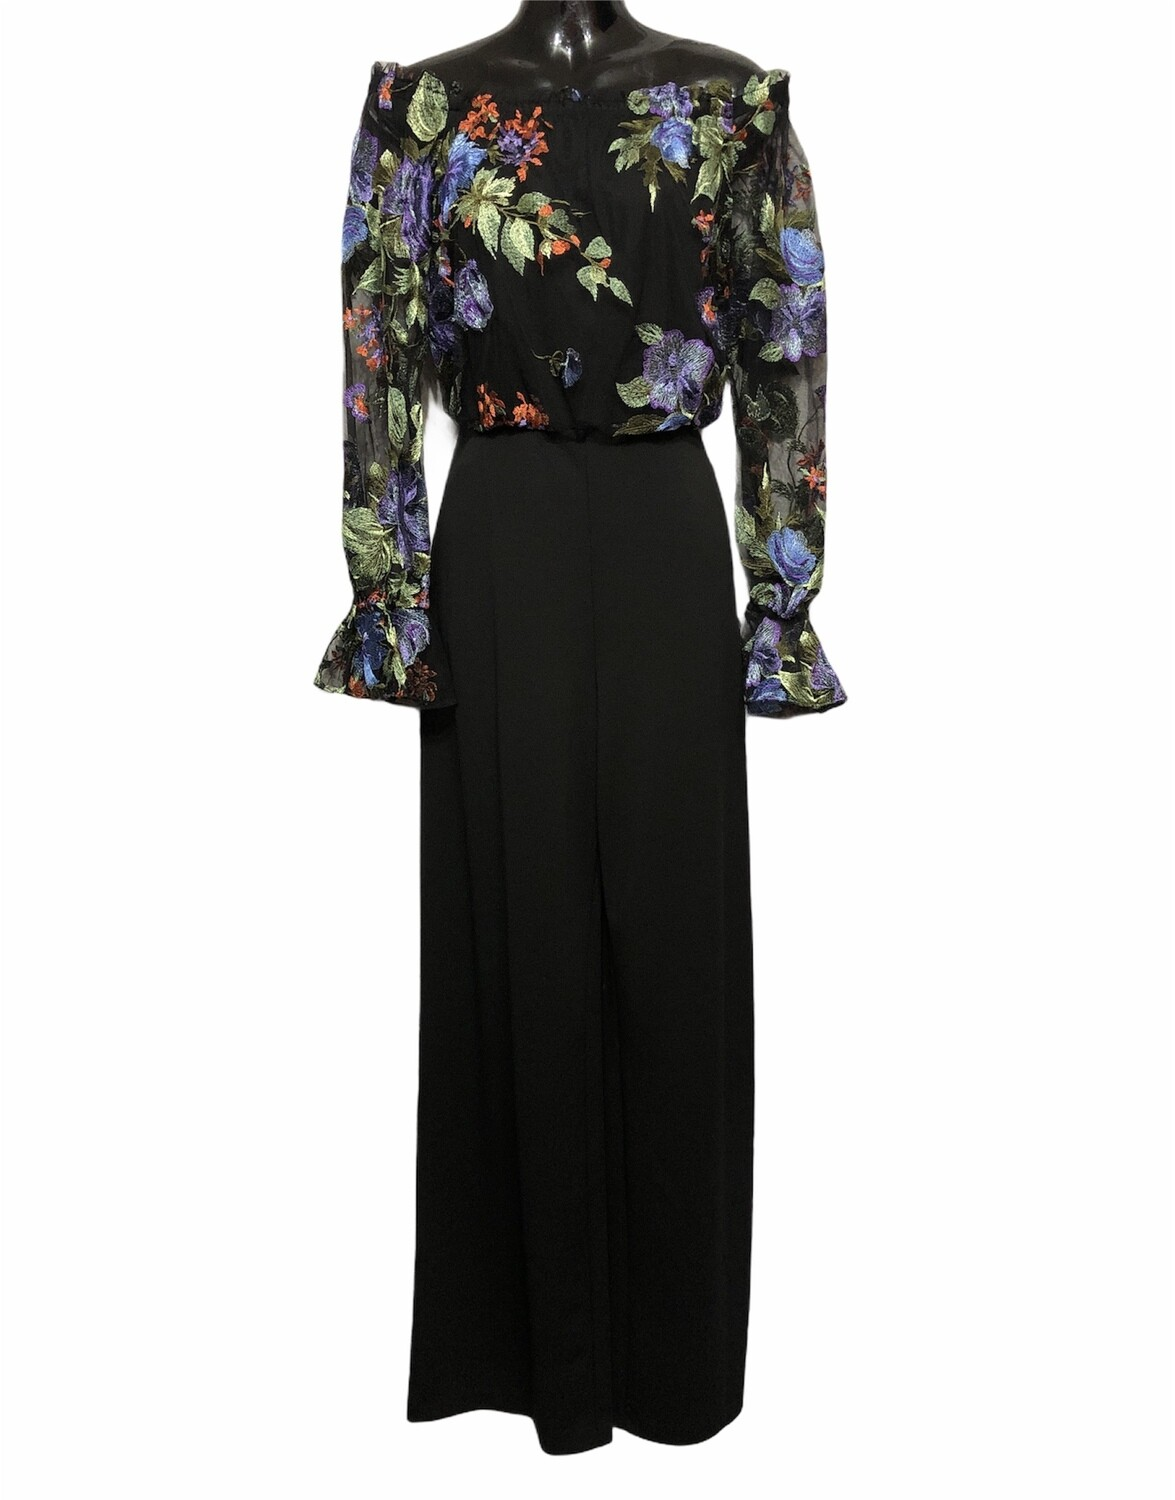 ADRIANNA PAPELL Sheer Floral Off-The-Shoulder Jumpsuit size 6